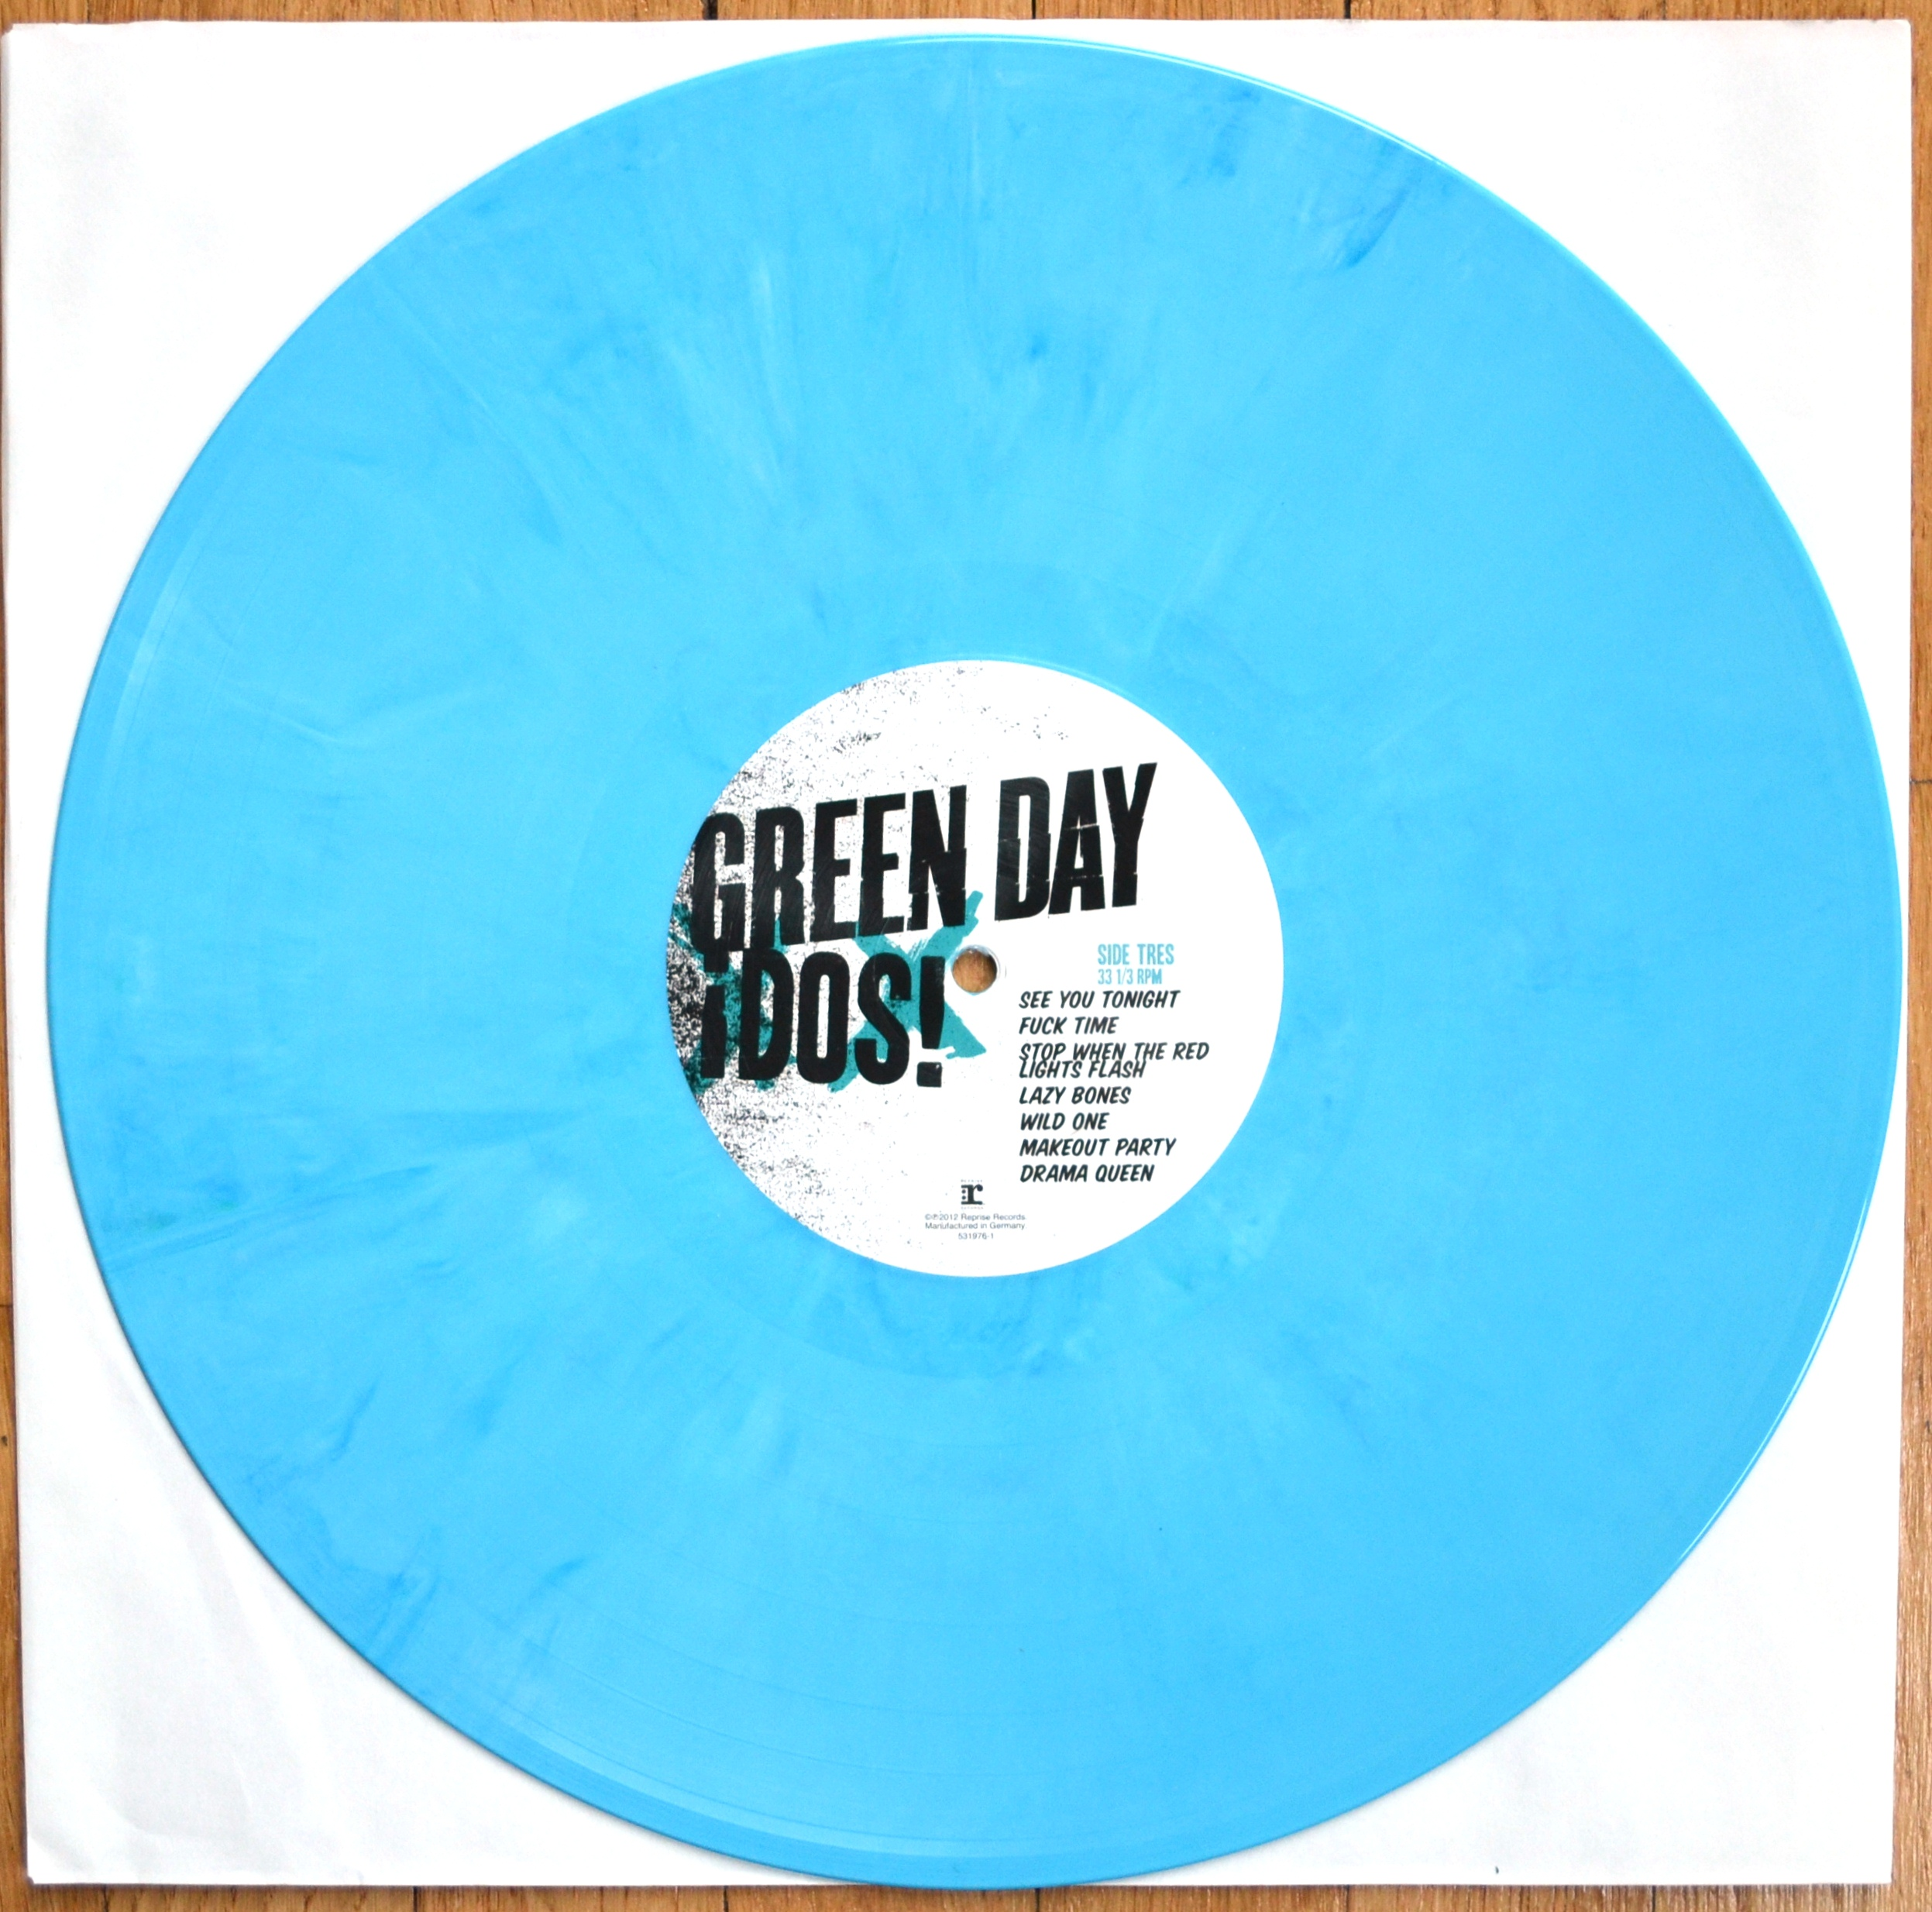 Green Day Dos Vinyl Lp Aqua Blue 183 Revealed Records